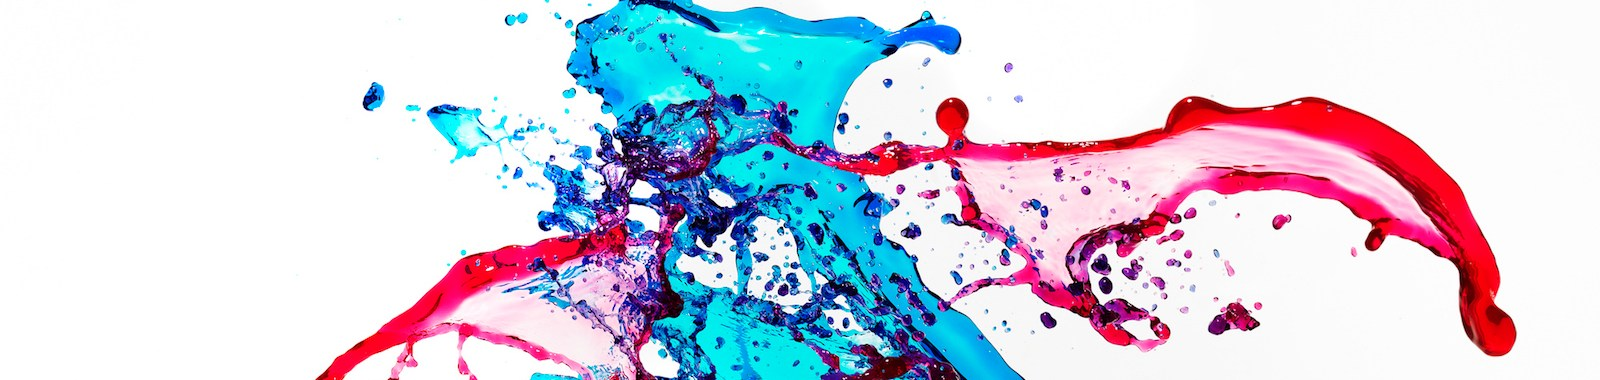 Red and blue colored liquids splashing and mixing on white background